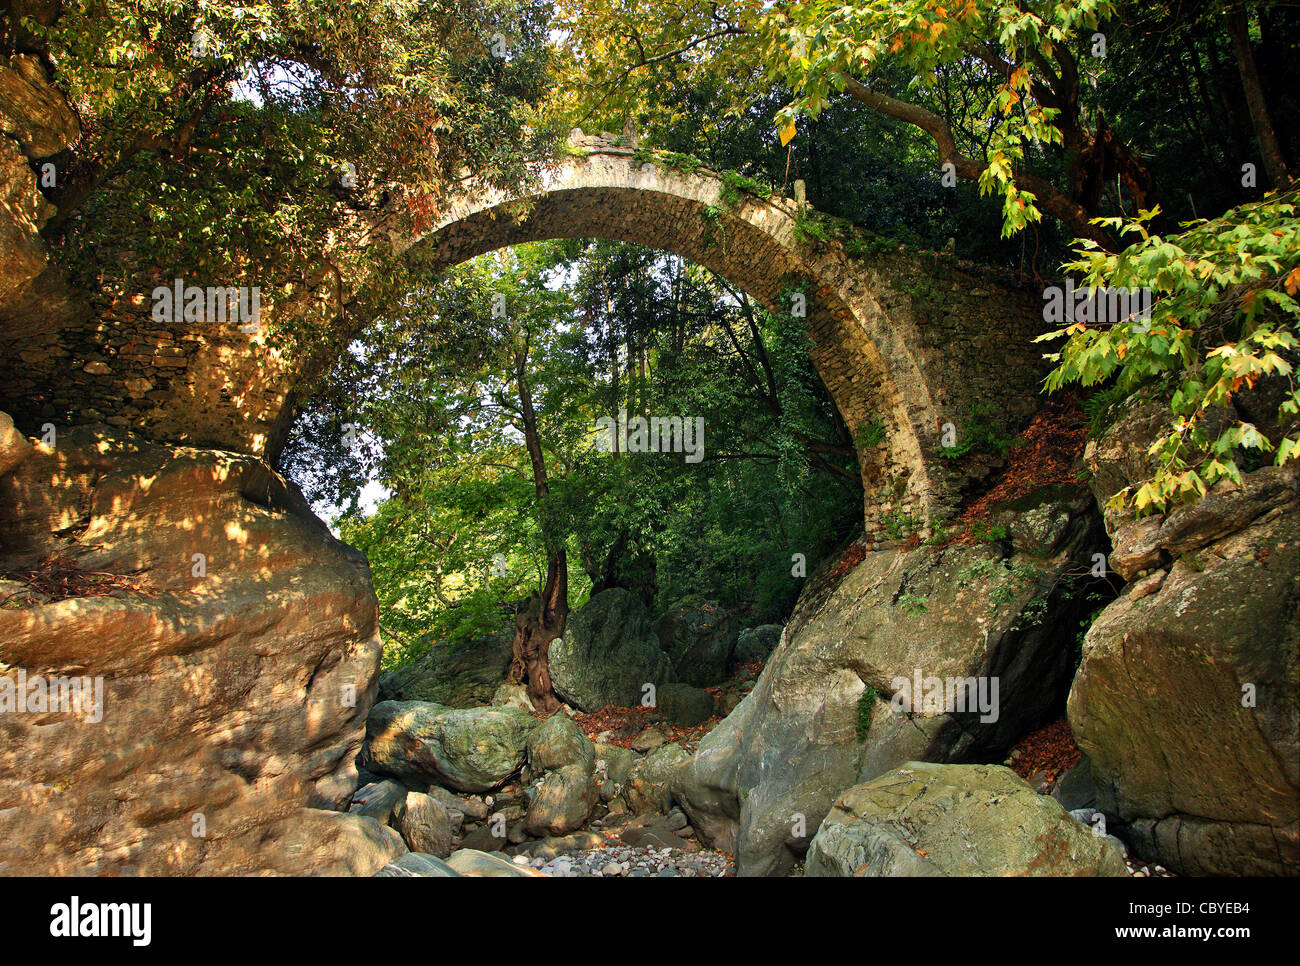 The Diakoumis old, stone, arched bridge in Northern Pelion mountain, Magnisia, Thessaly, Greece. - Stock Image